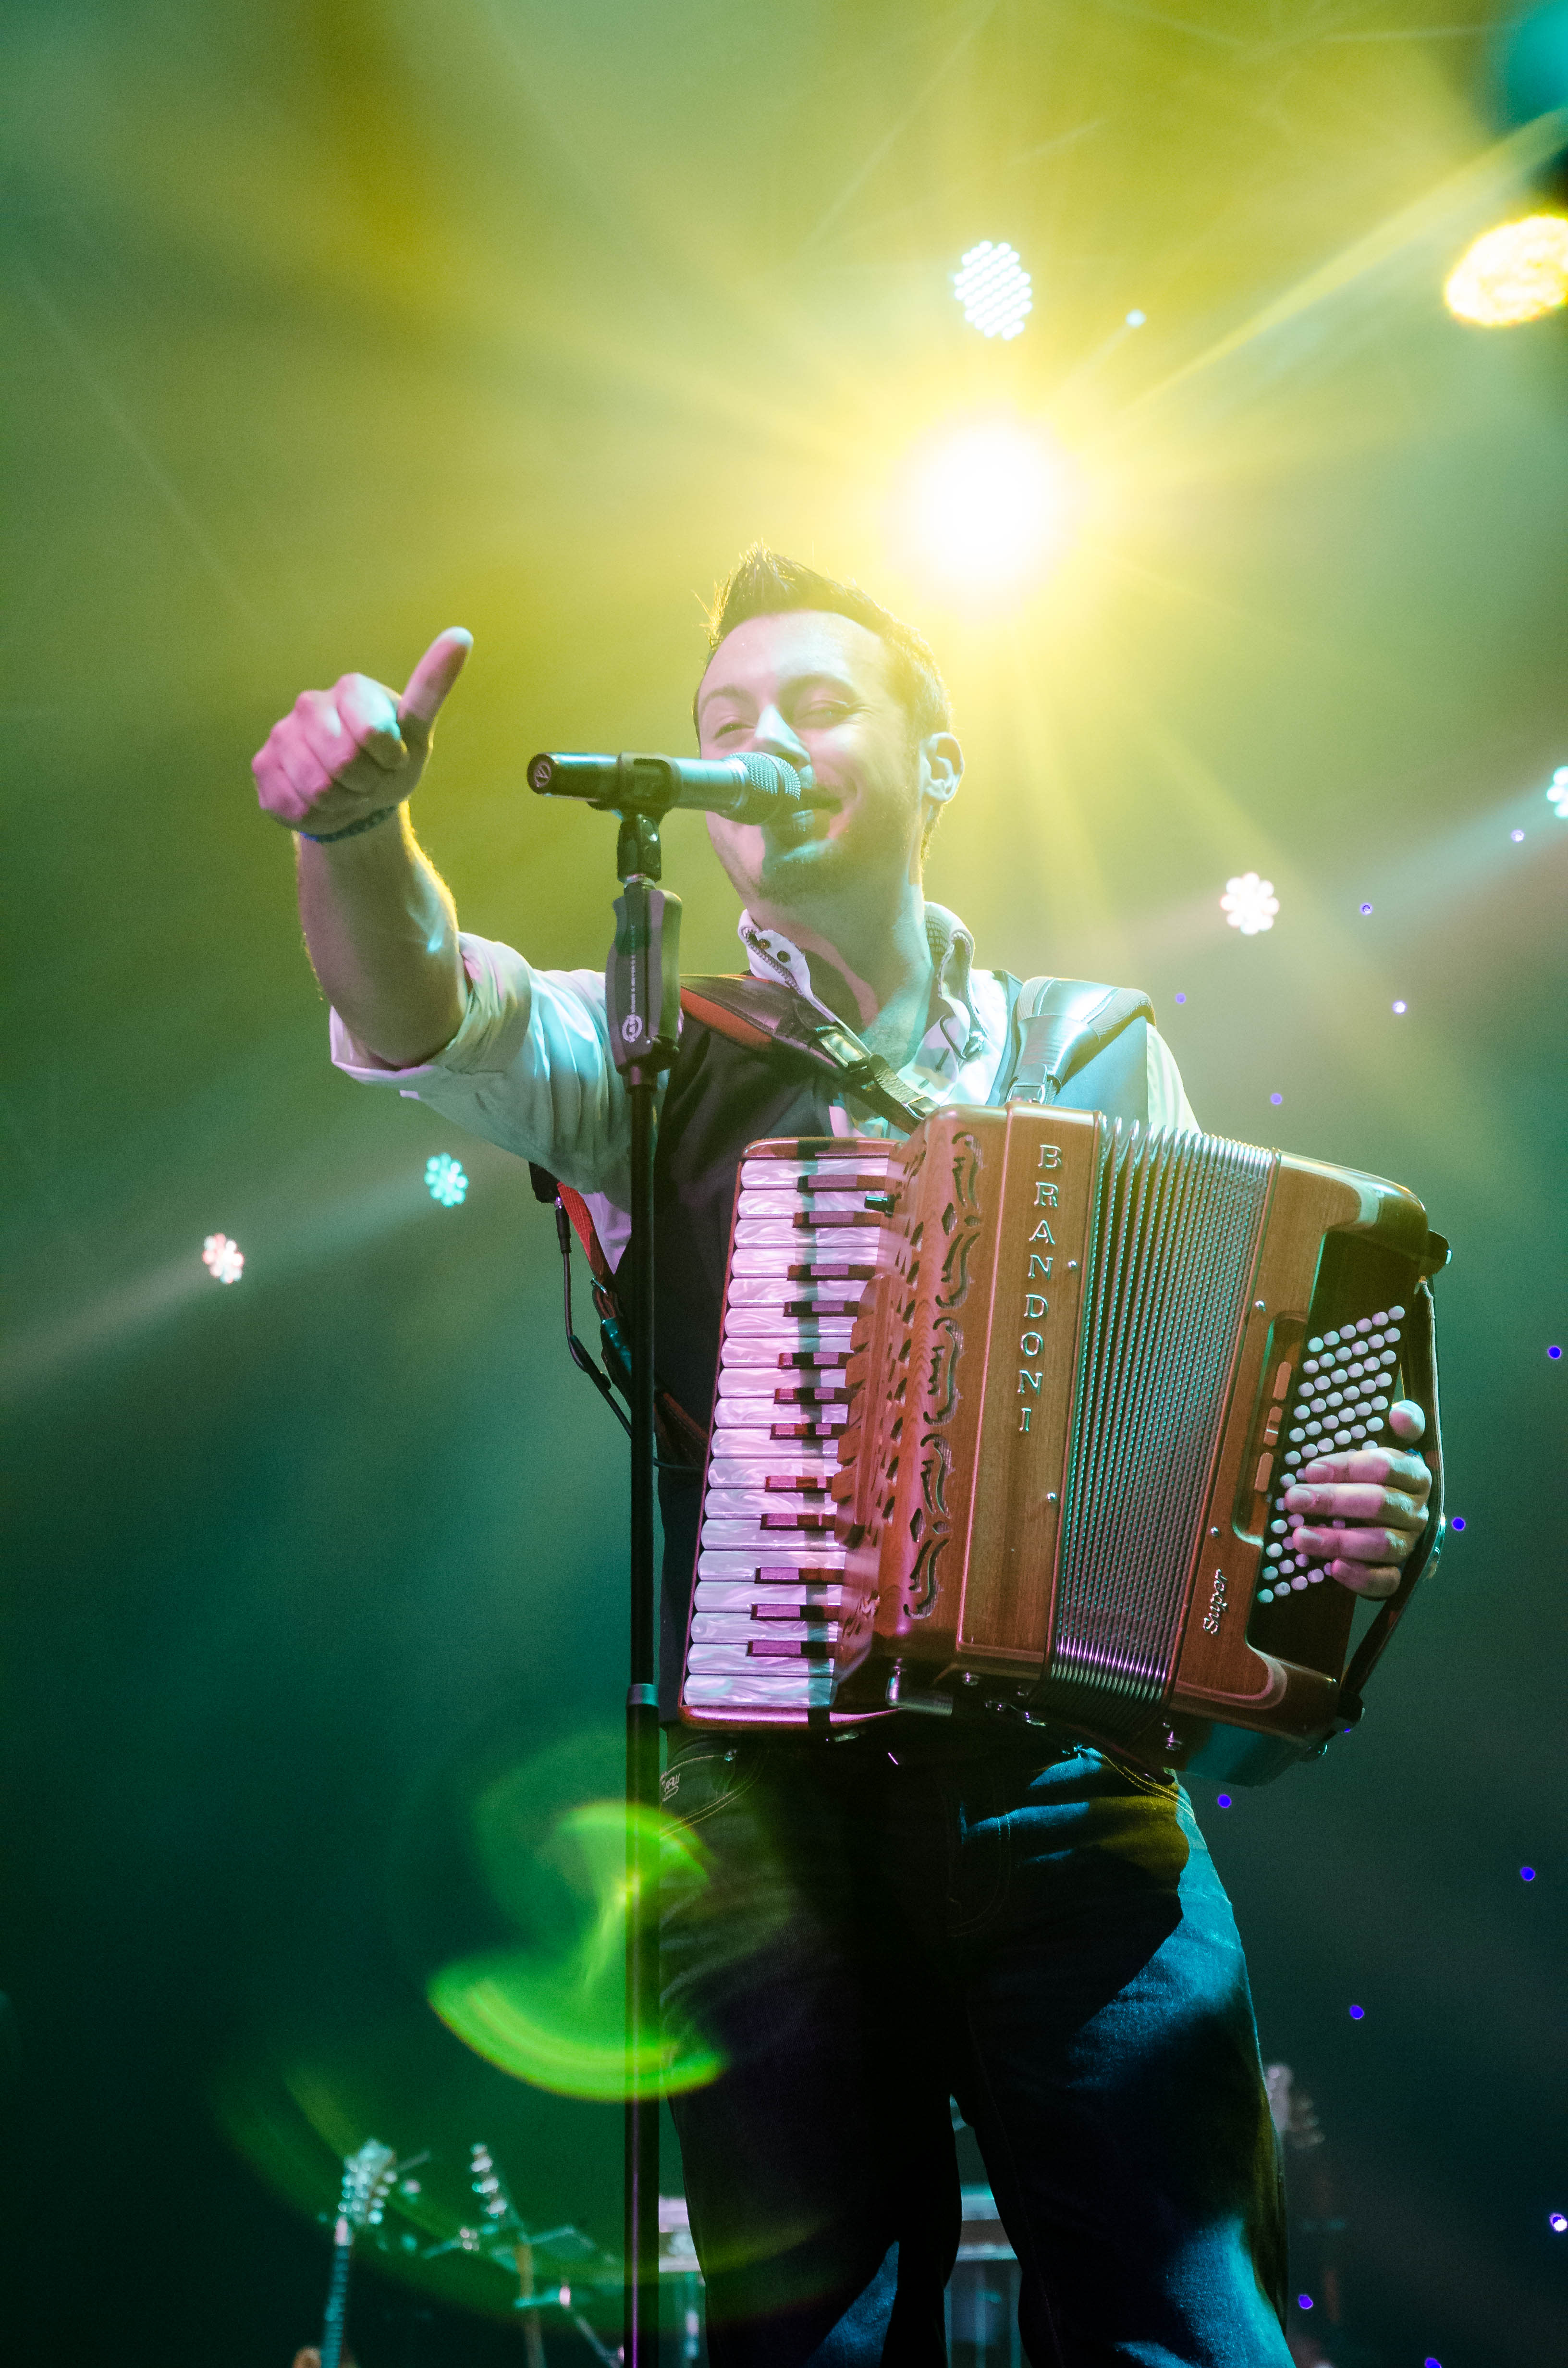 nathan-carter-at-the-marquee-cork-by-sean-smyth-15-6-14-32-of-55